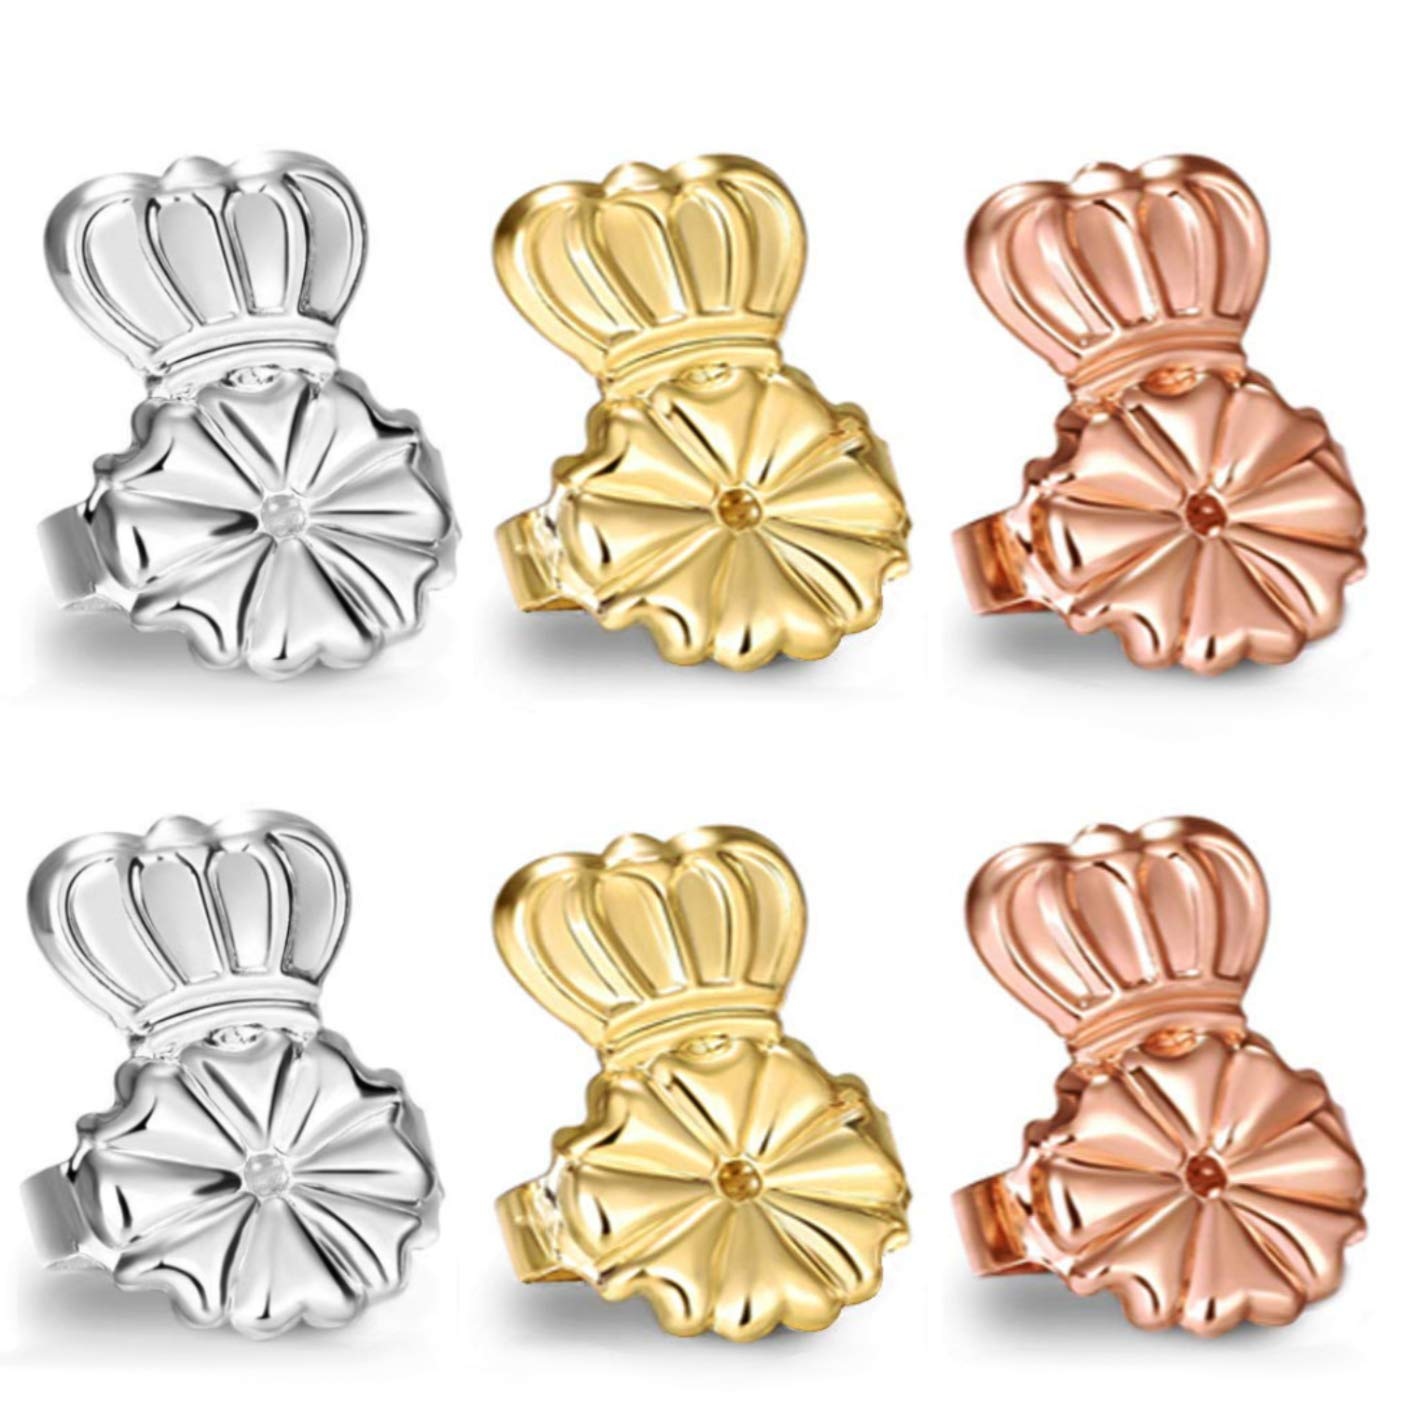 AmzonBasics - Original Magic Earring Lifters 3 Pairs of Adjustable Earring Lifts Earring Backs (Pair of Sterling Silver, Pair of 18K Gold Plated and Pair of Rose Gold) by CROCODILOO KIDS